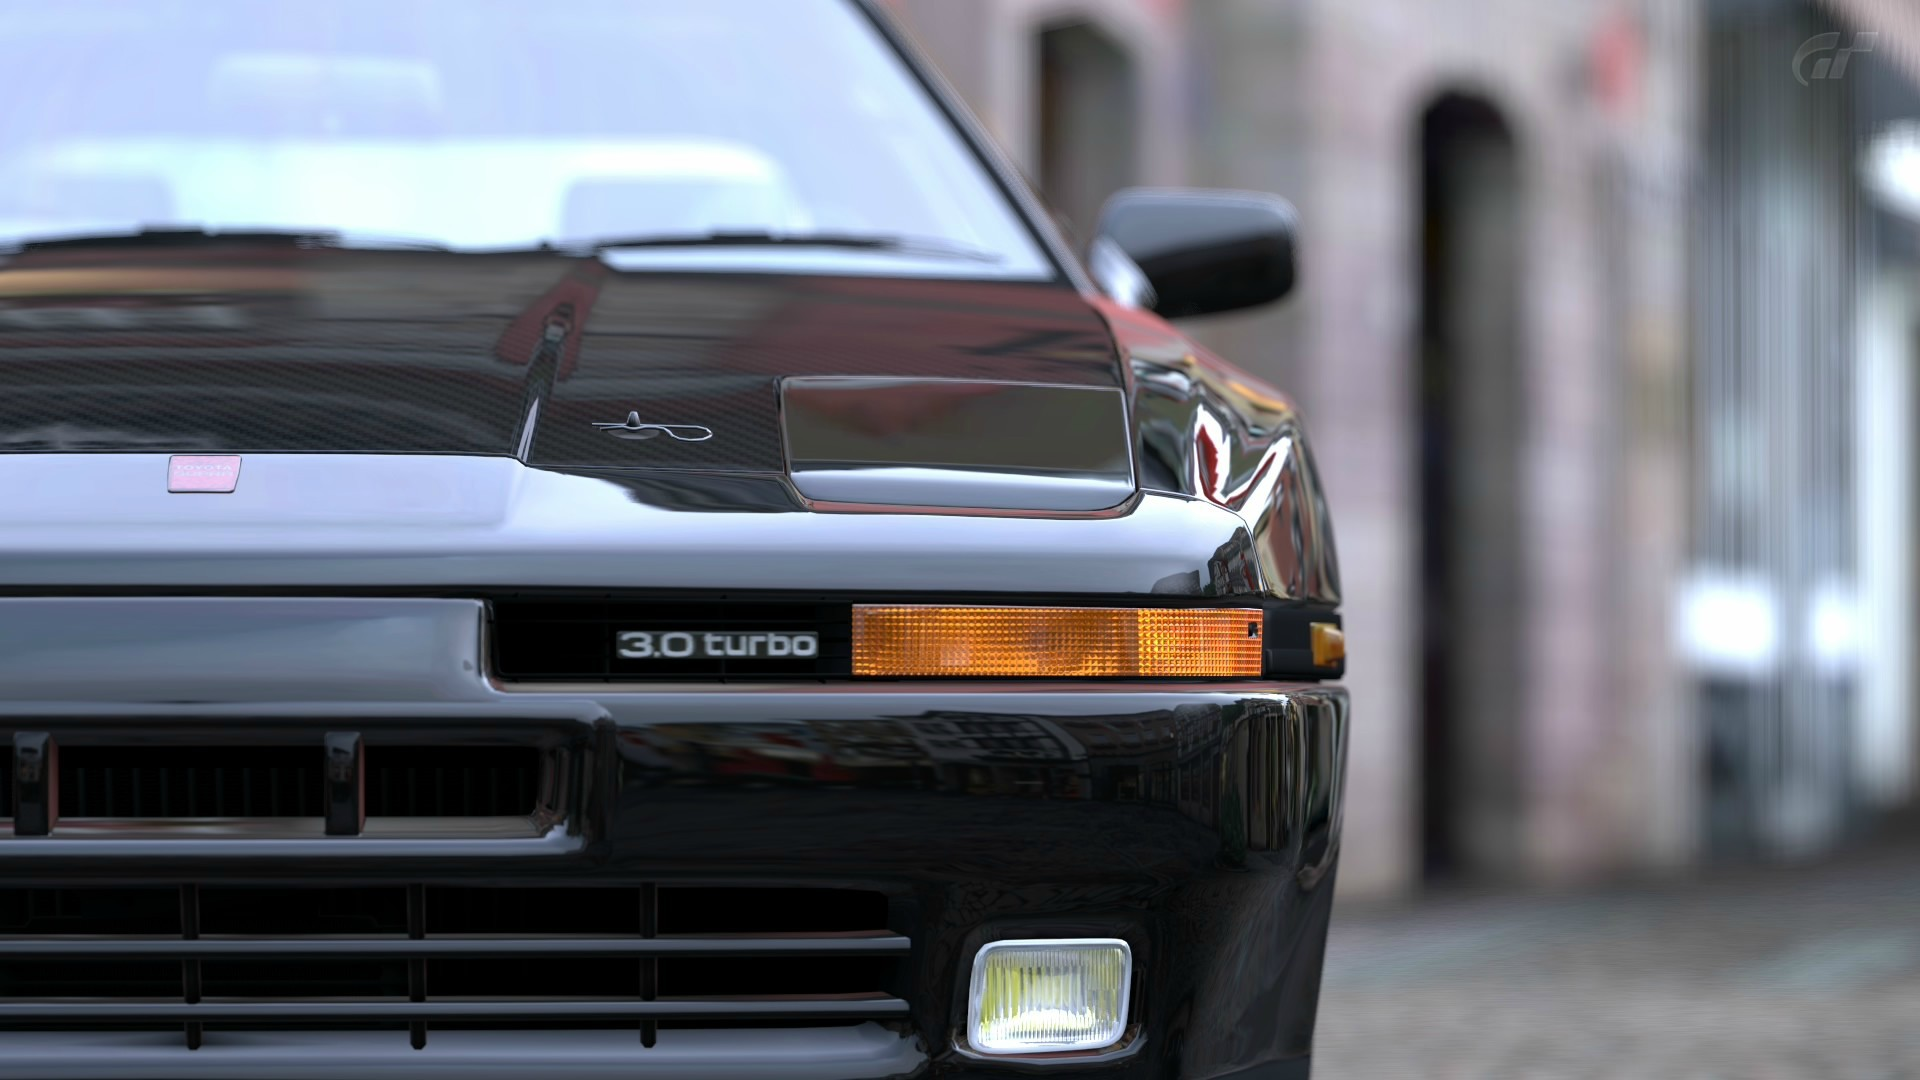 Sorry, I don't have Phone Wallpaper for MK3 Supra but PC